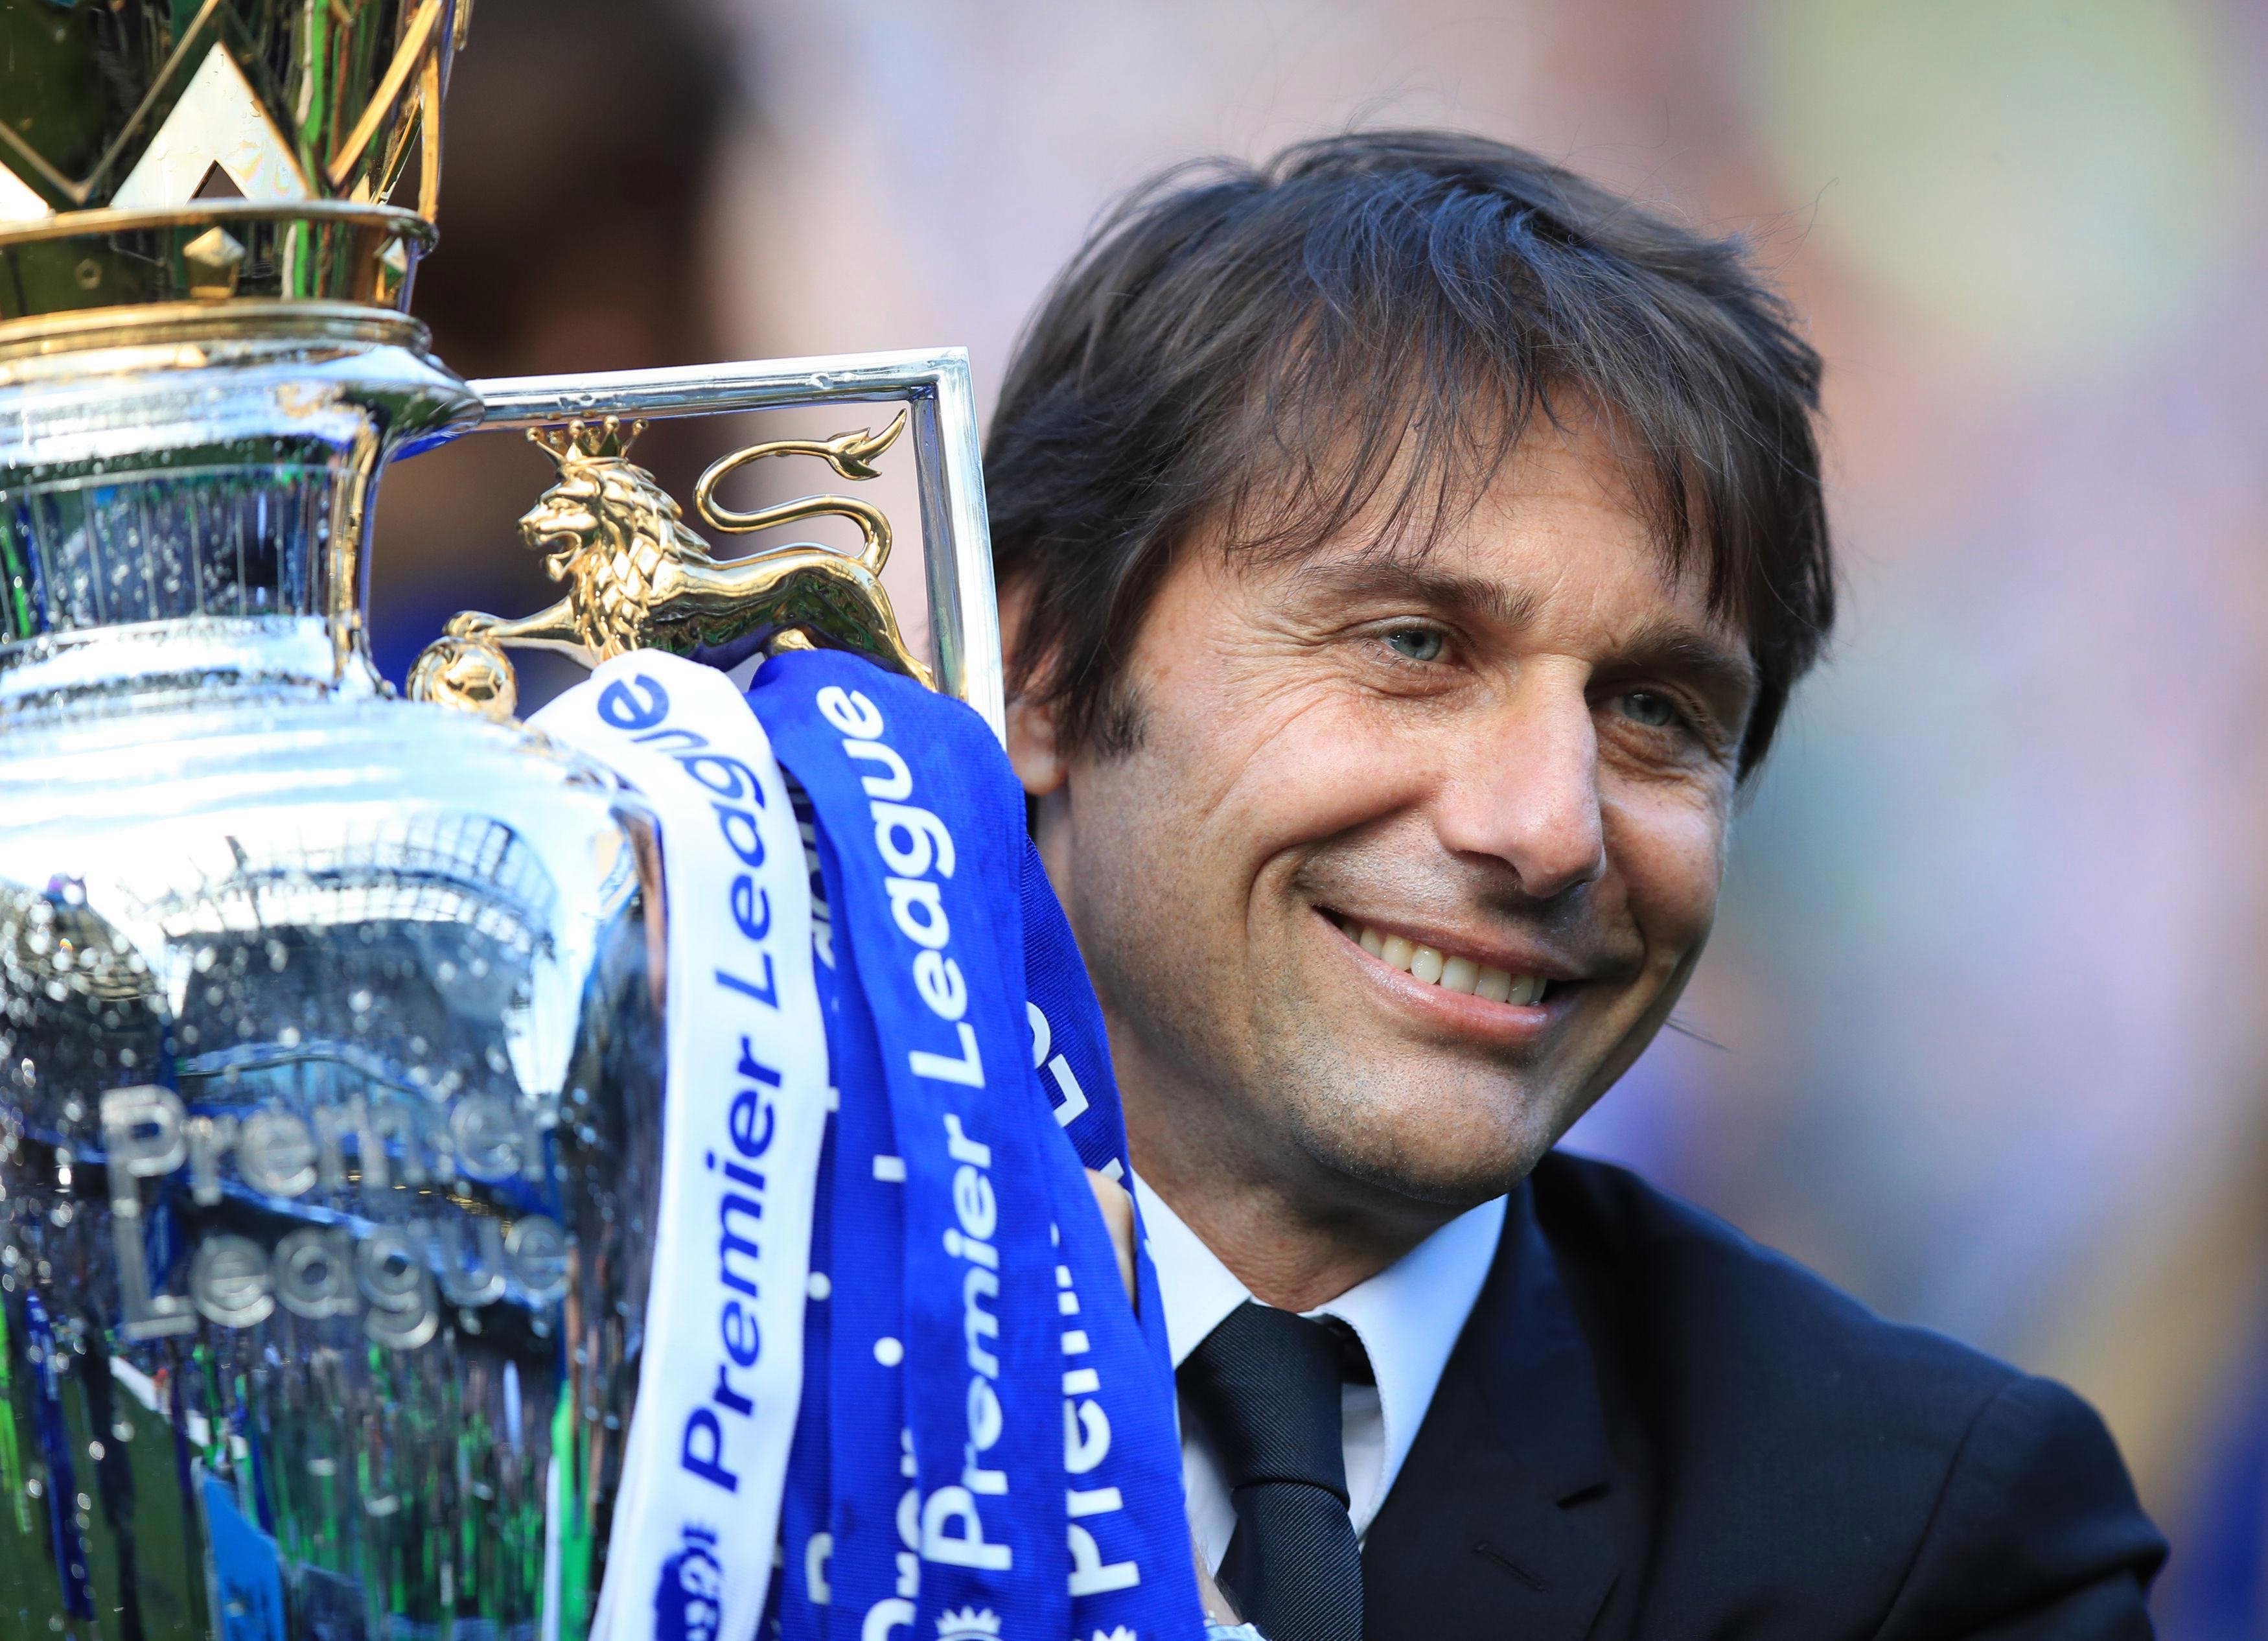 Antonio Conte is looking to clinch back-to-back Premier League titles